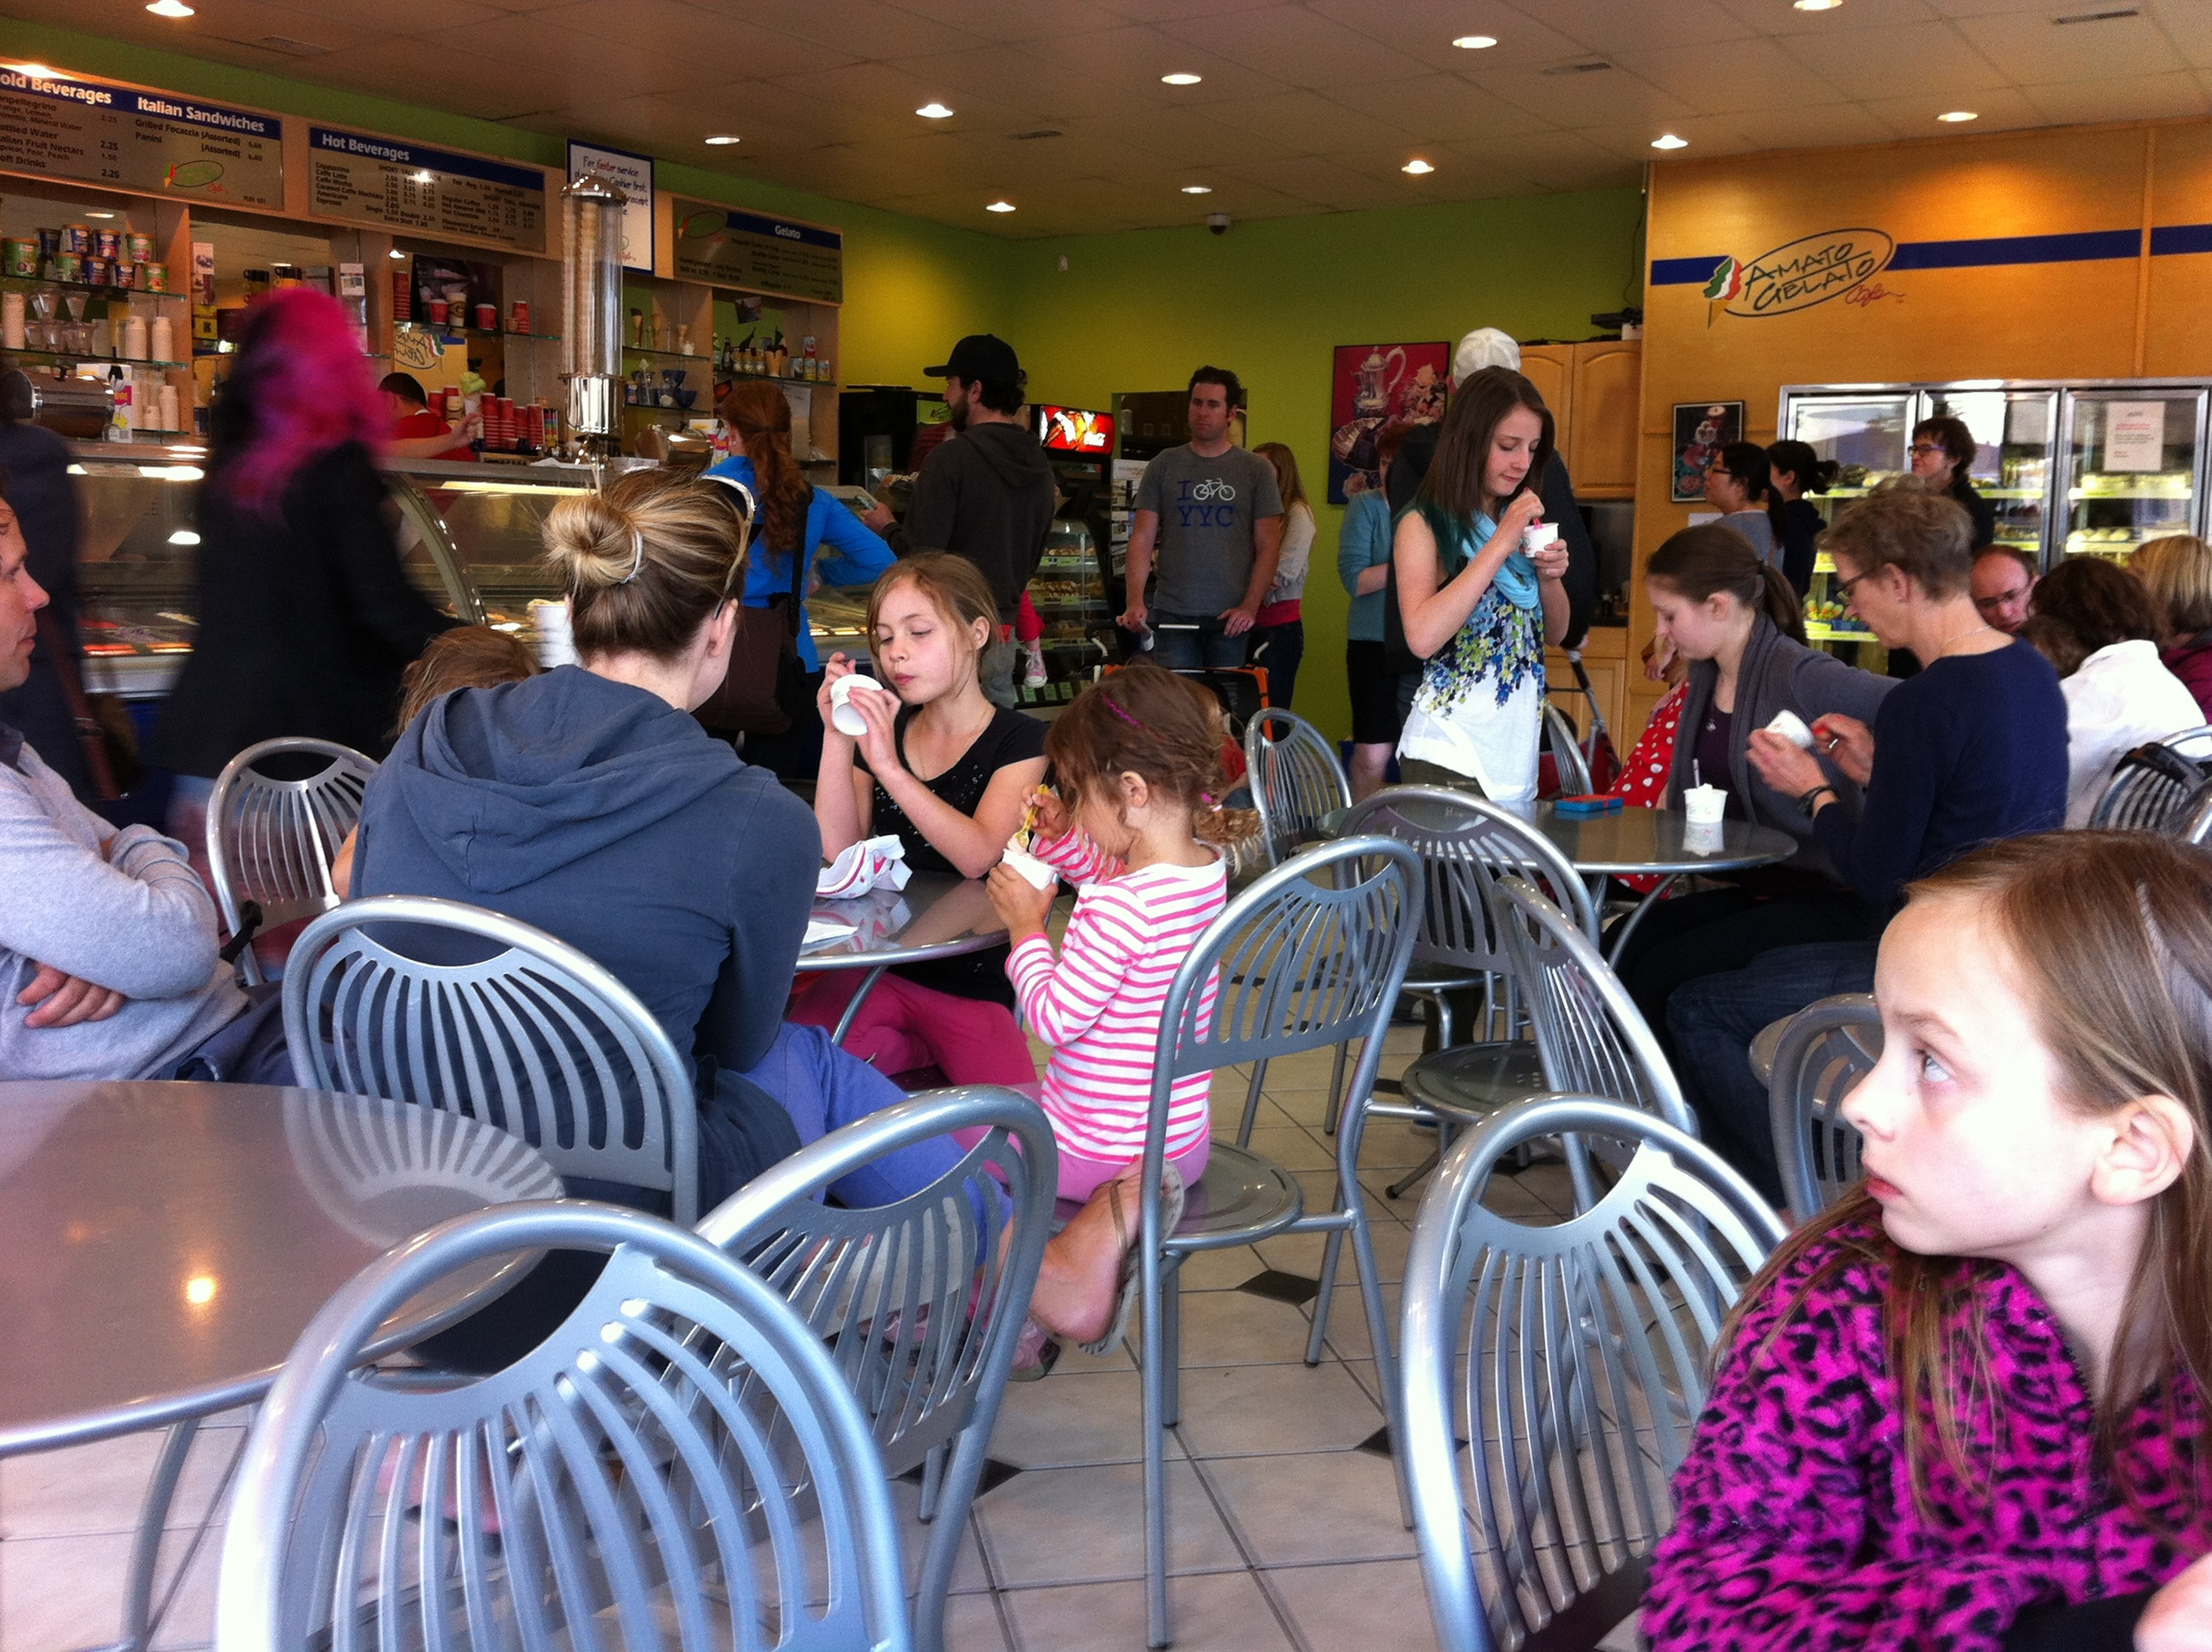 Amato Gelato Cafe is popular with the young families who are moving into West Hillhurst.